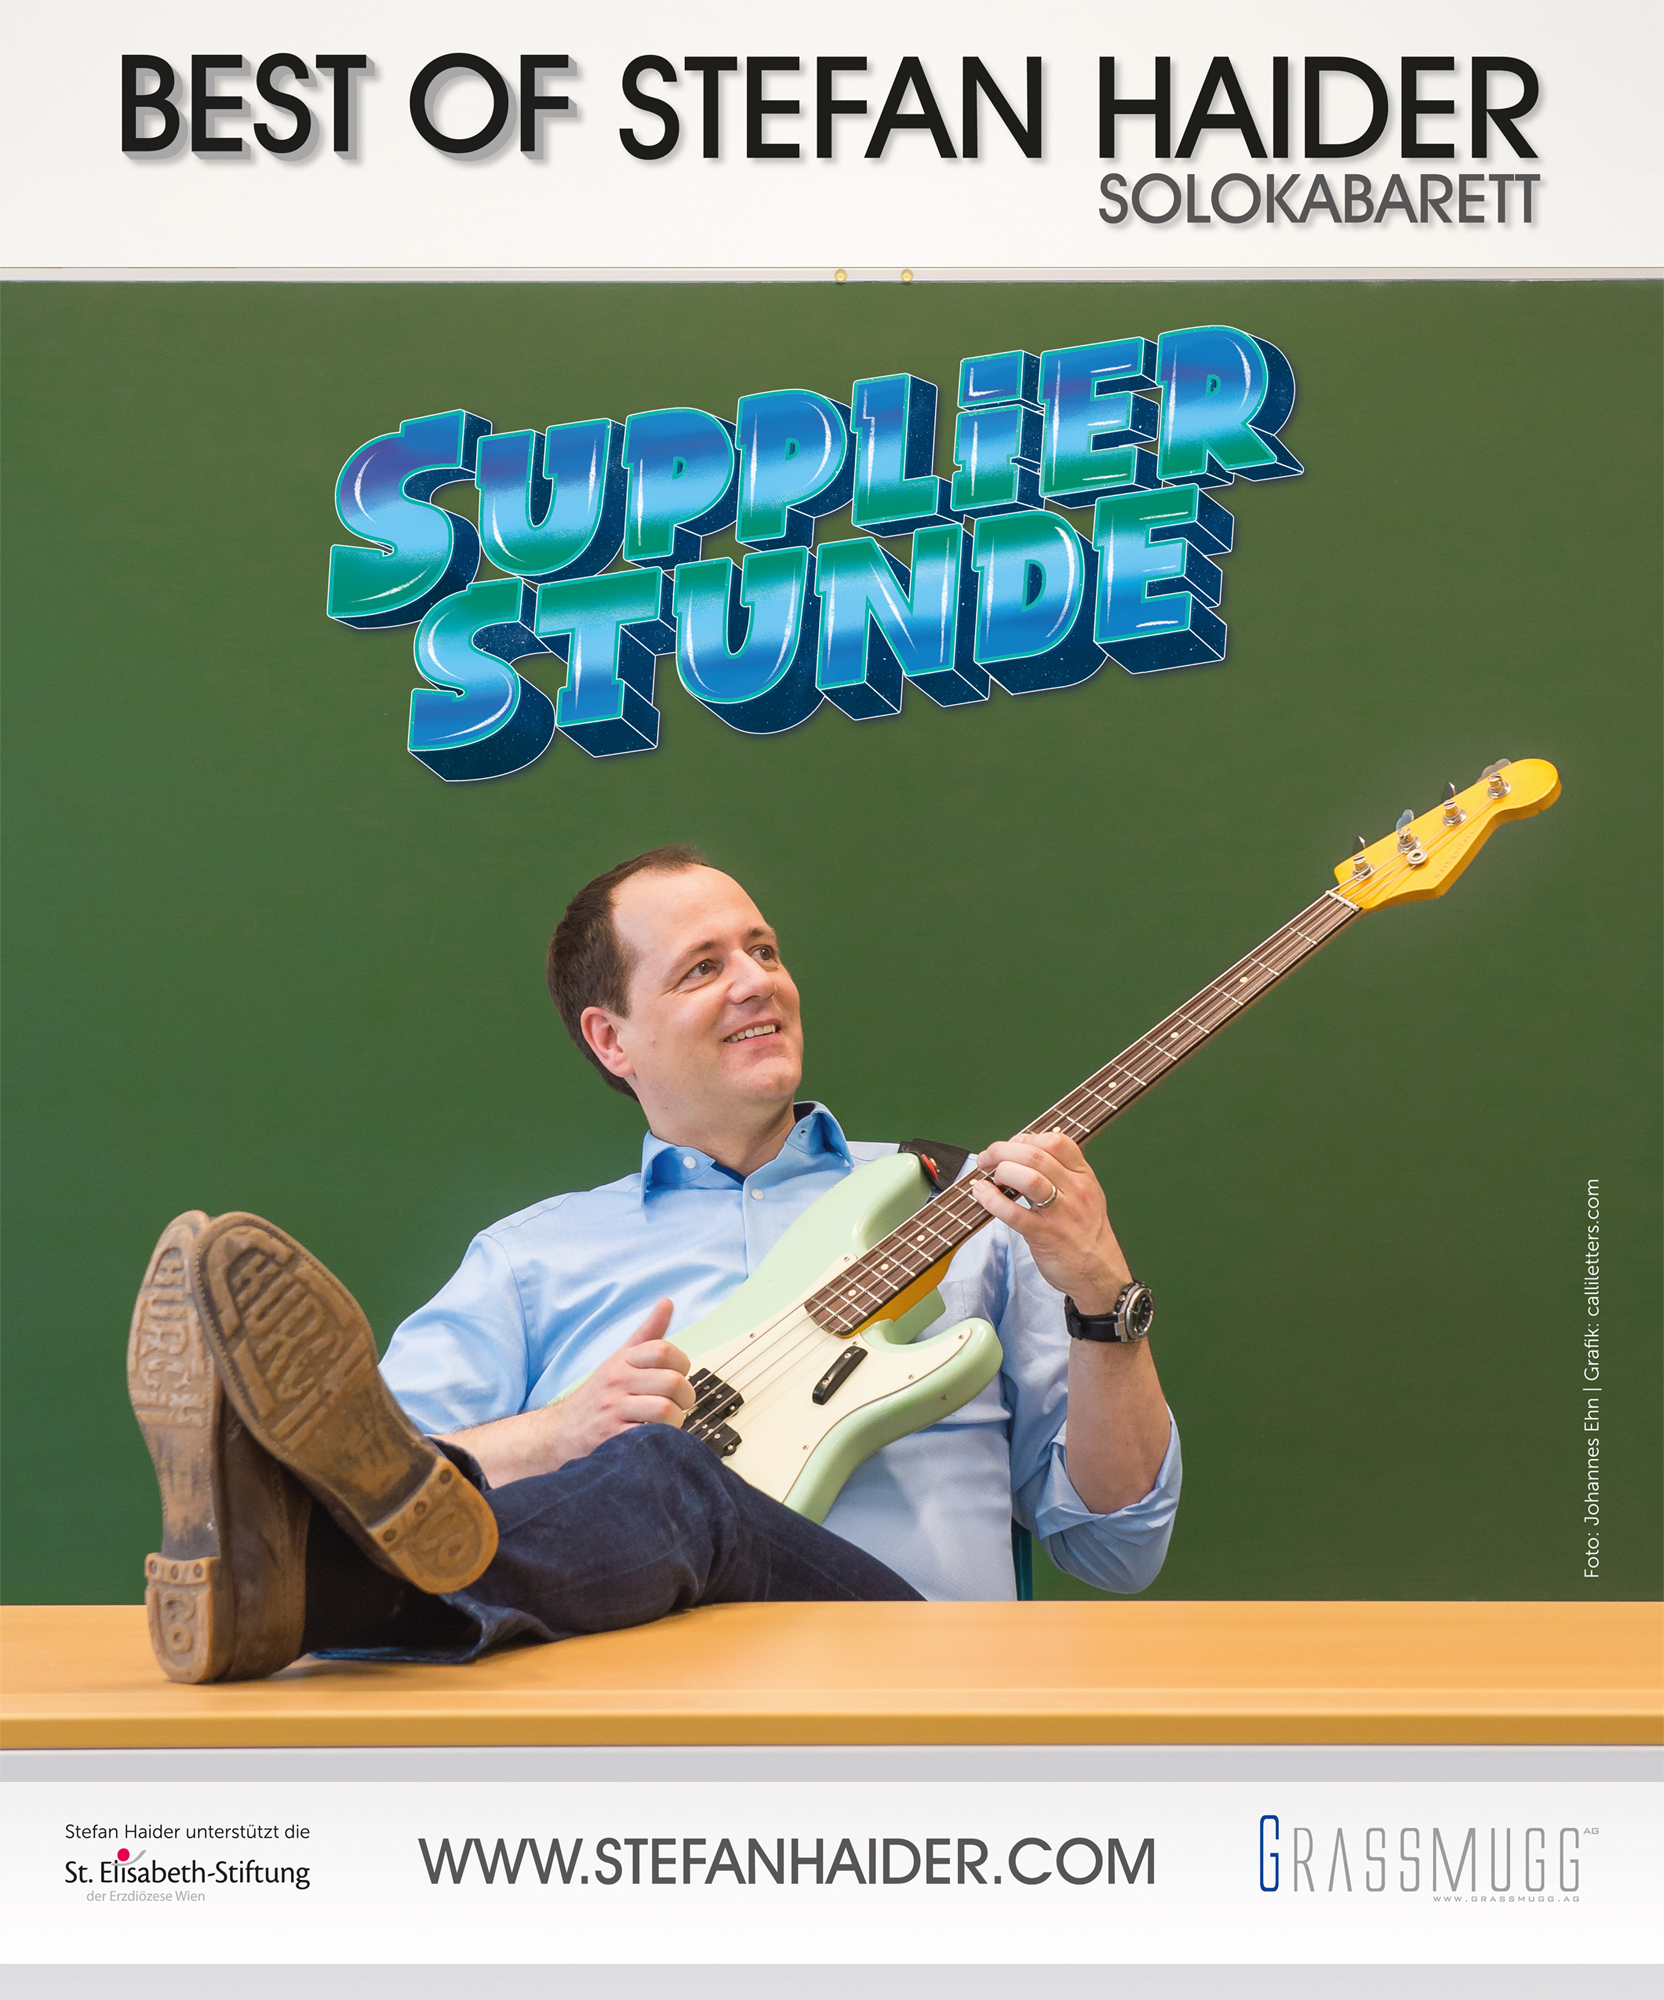 Stefan Haider - Supplierstunde